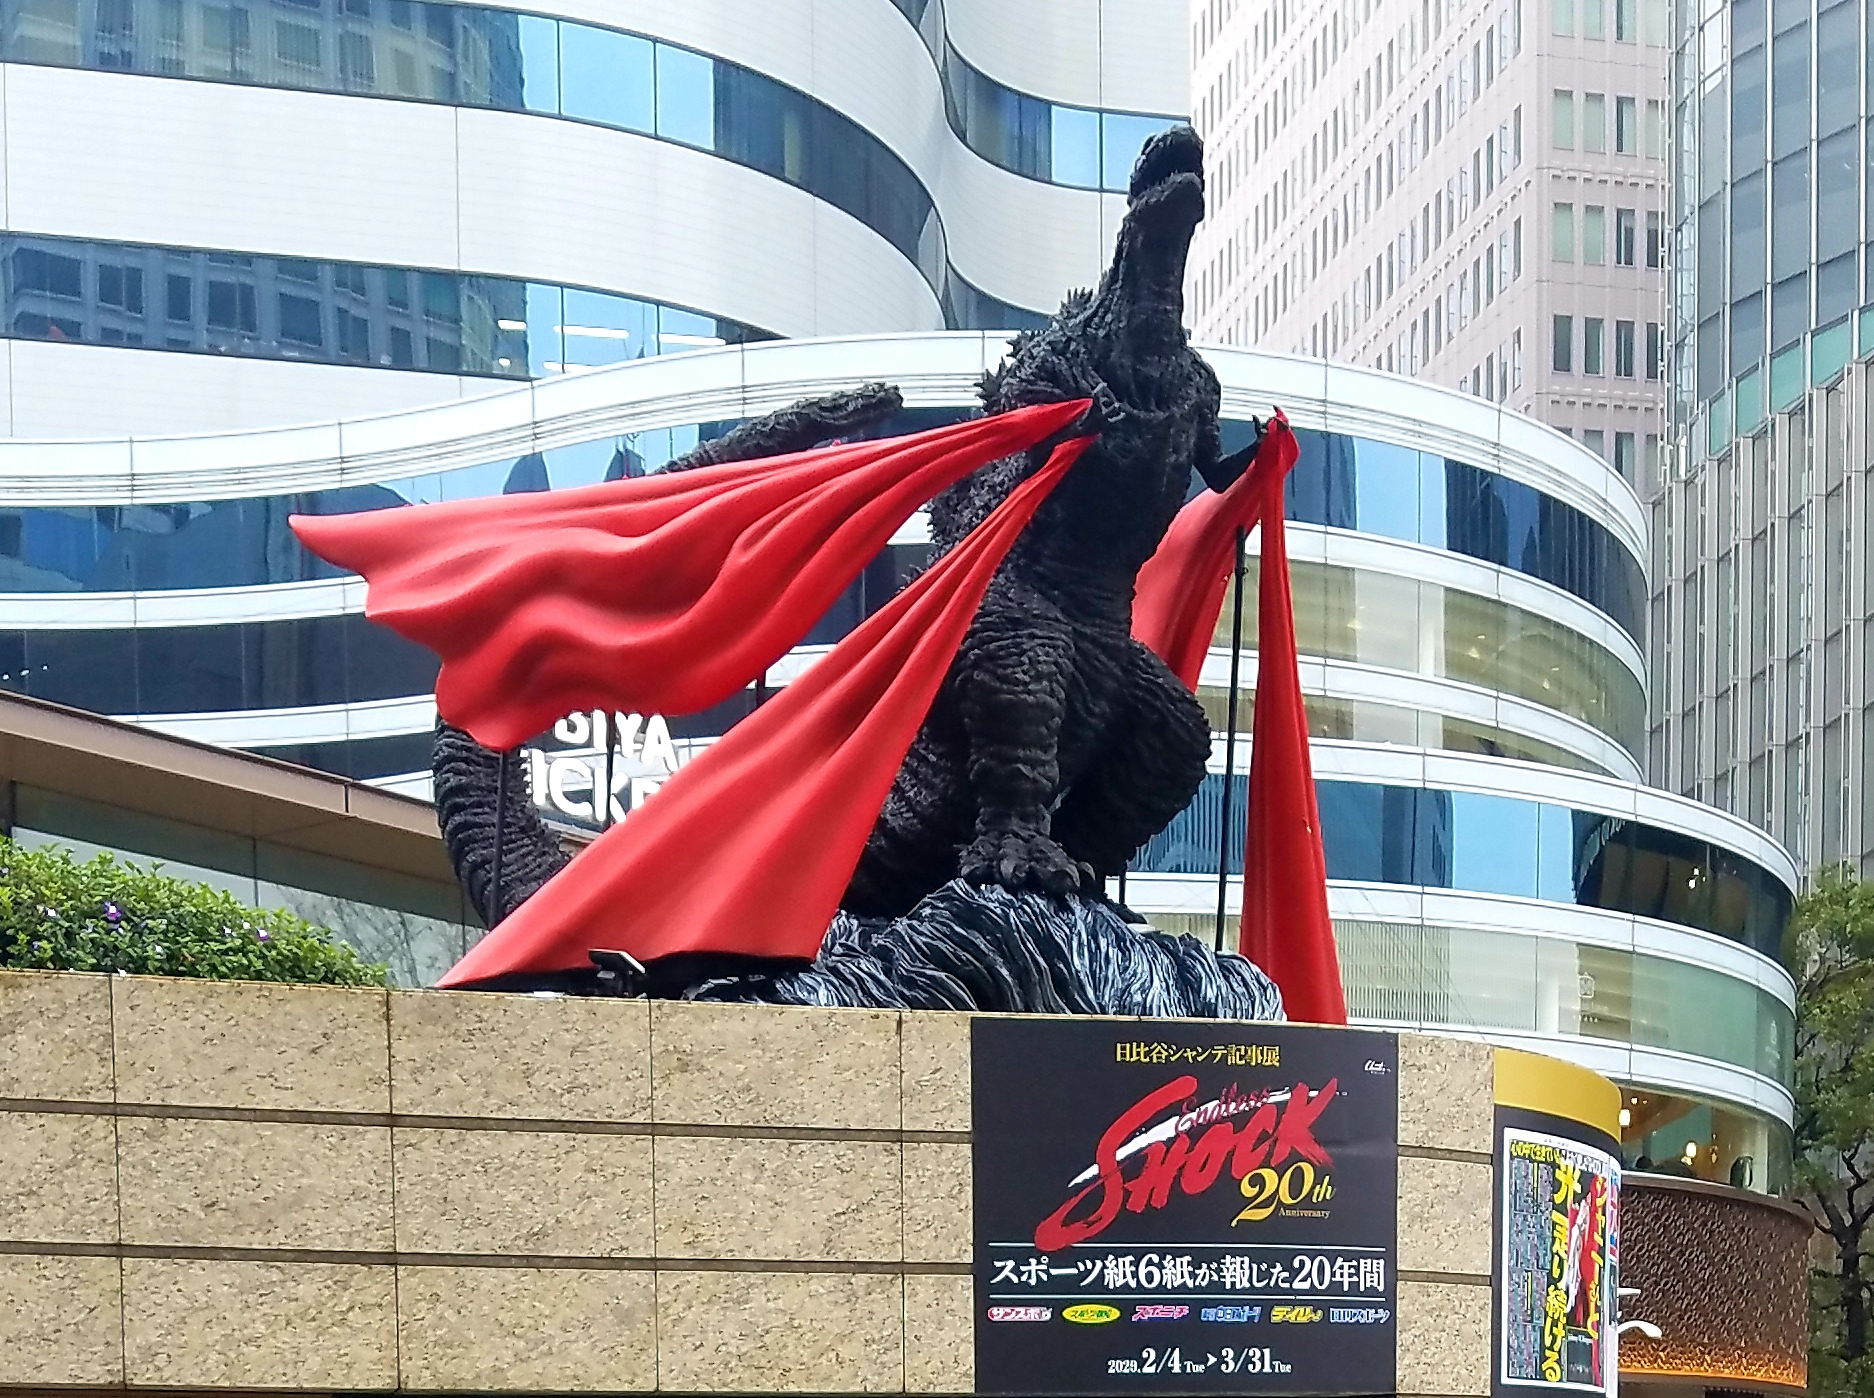 Endless Shock Godzilla at Godzilla Square Hibiya Chanter